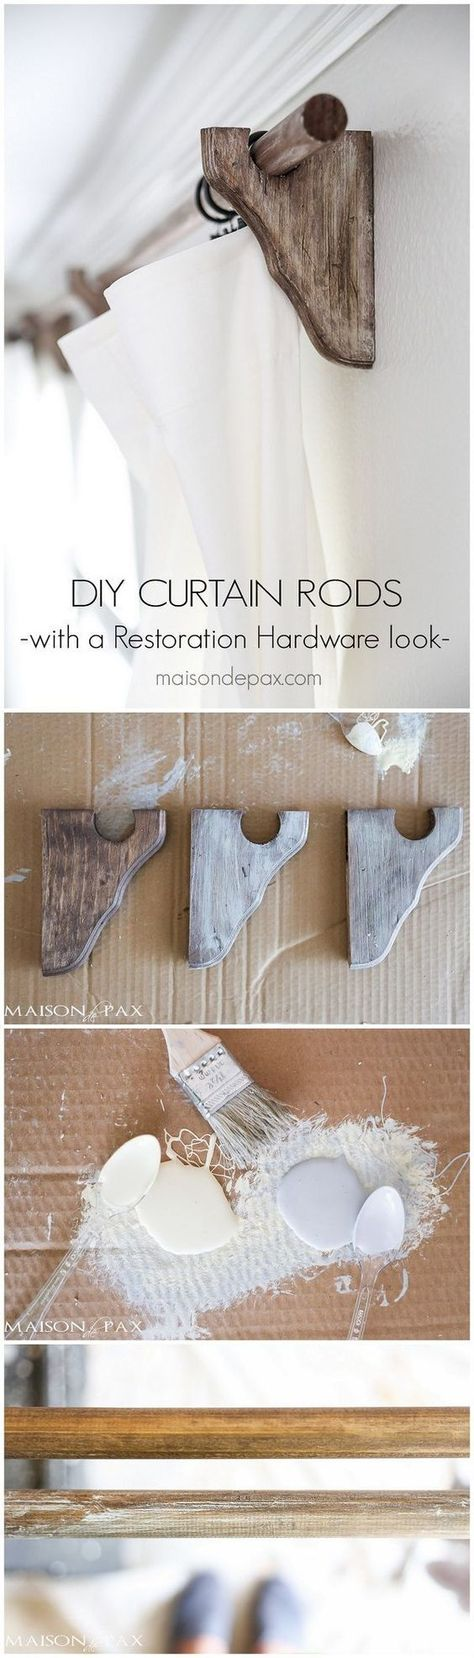 Wood Curtain Rods With A Restoration Hardware Look Con Imagenes